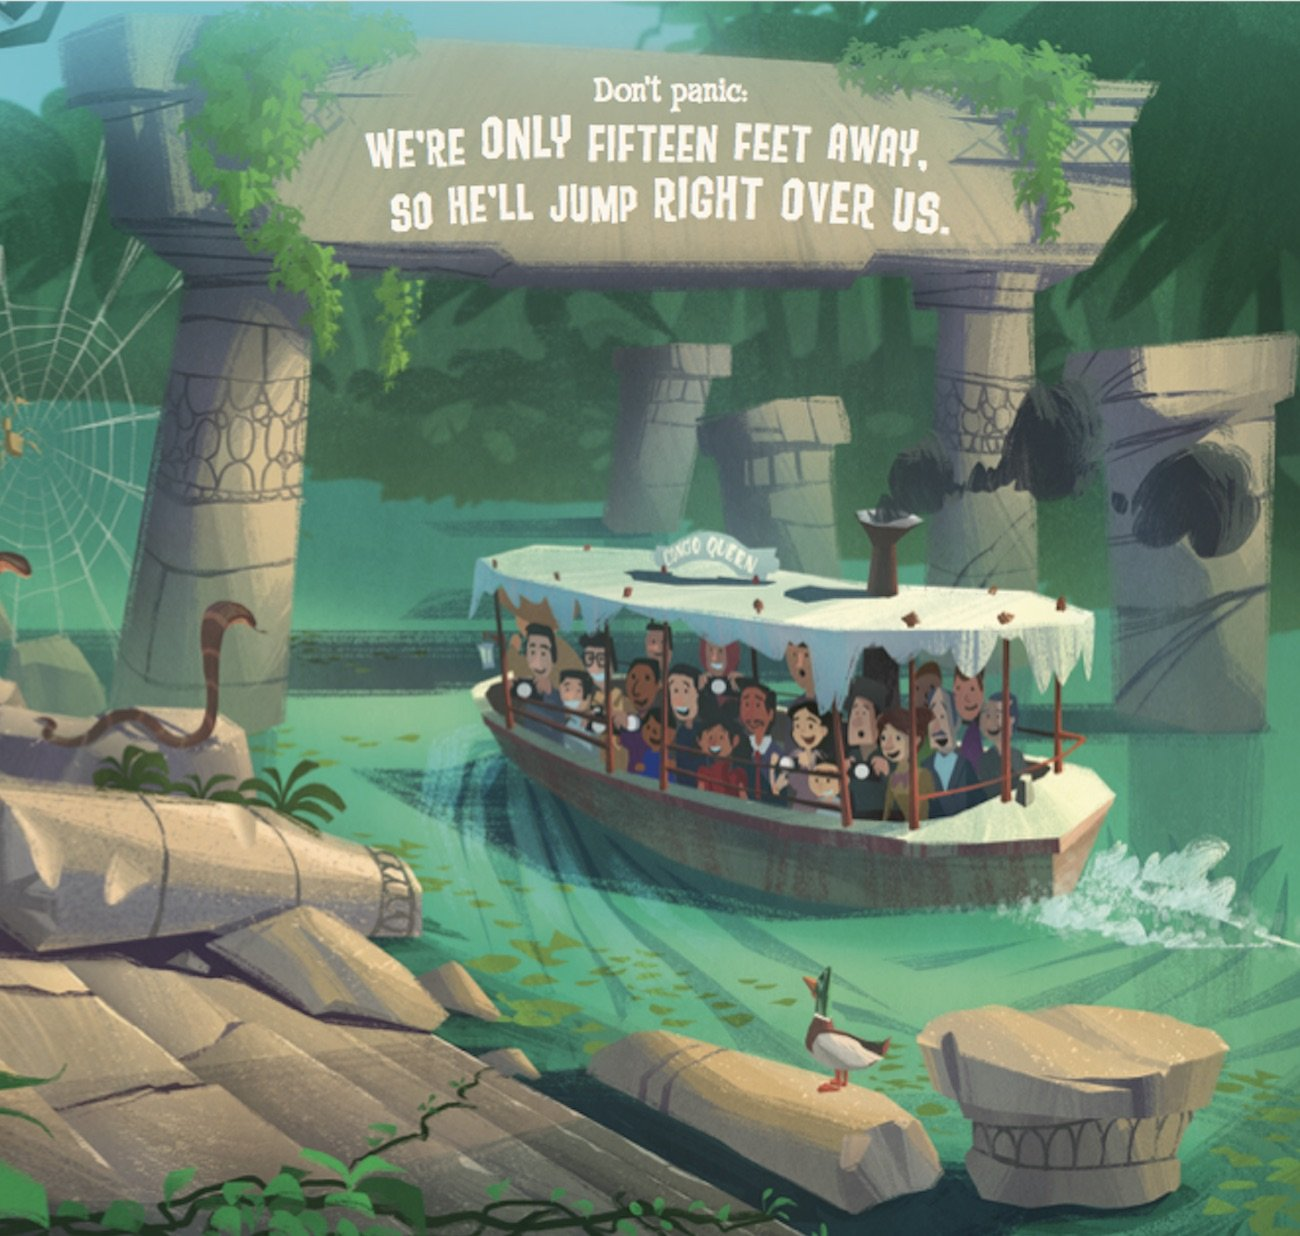 Disney Parks Presents: Jungle Cruise: Purchase Includes a CD with Narration! by Disney Press (Image #7)